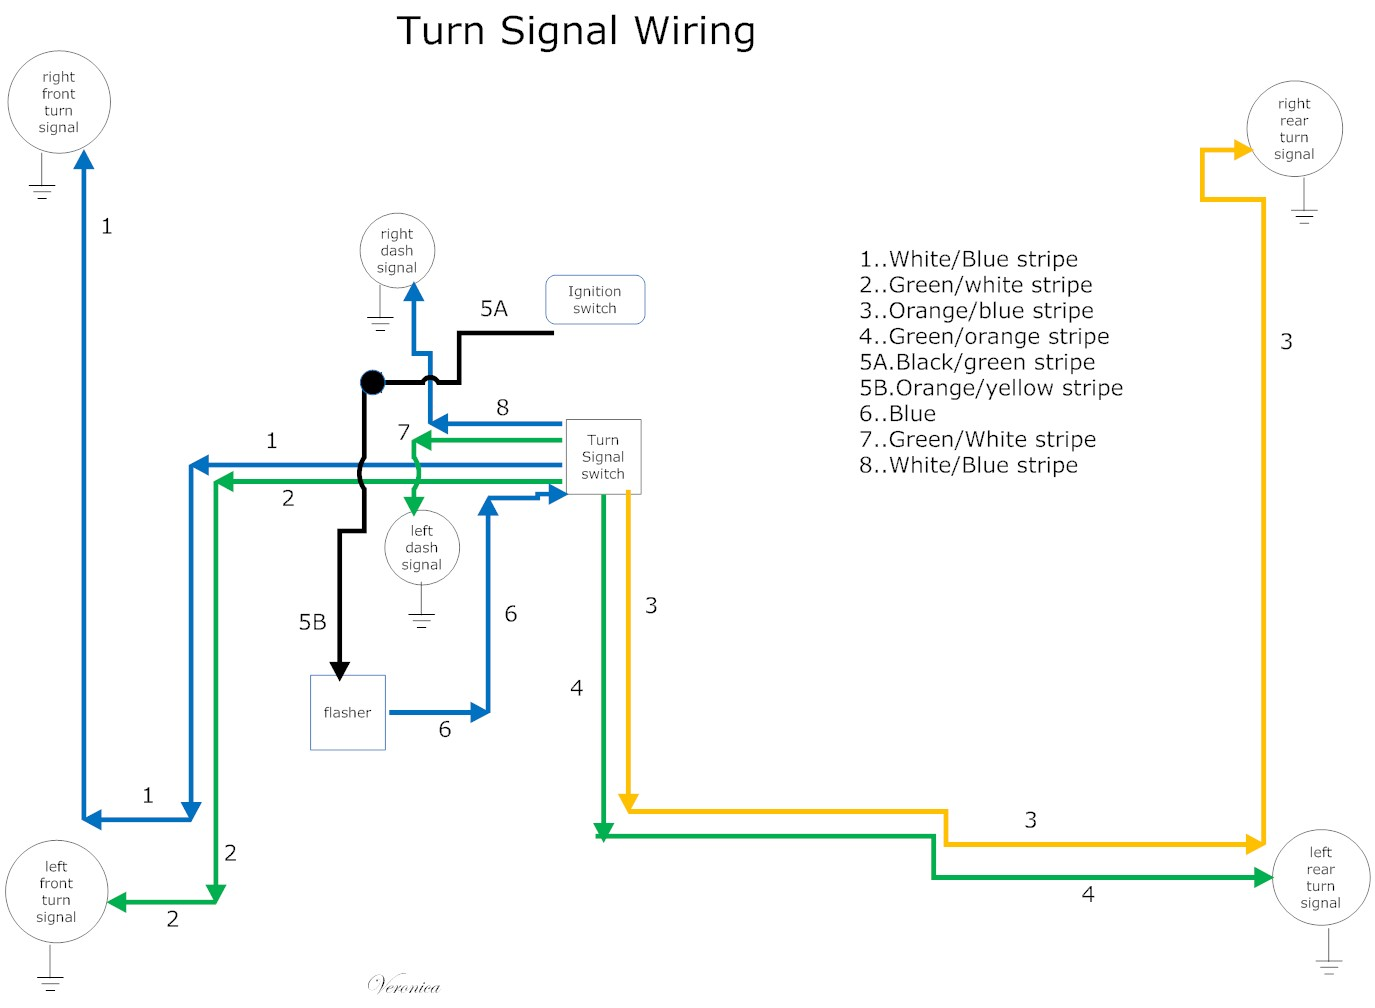 WRG-2562] Light Switch Wiring Diagrams 1966 Ford Falcon